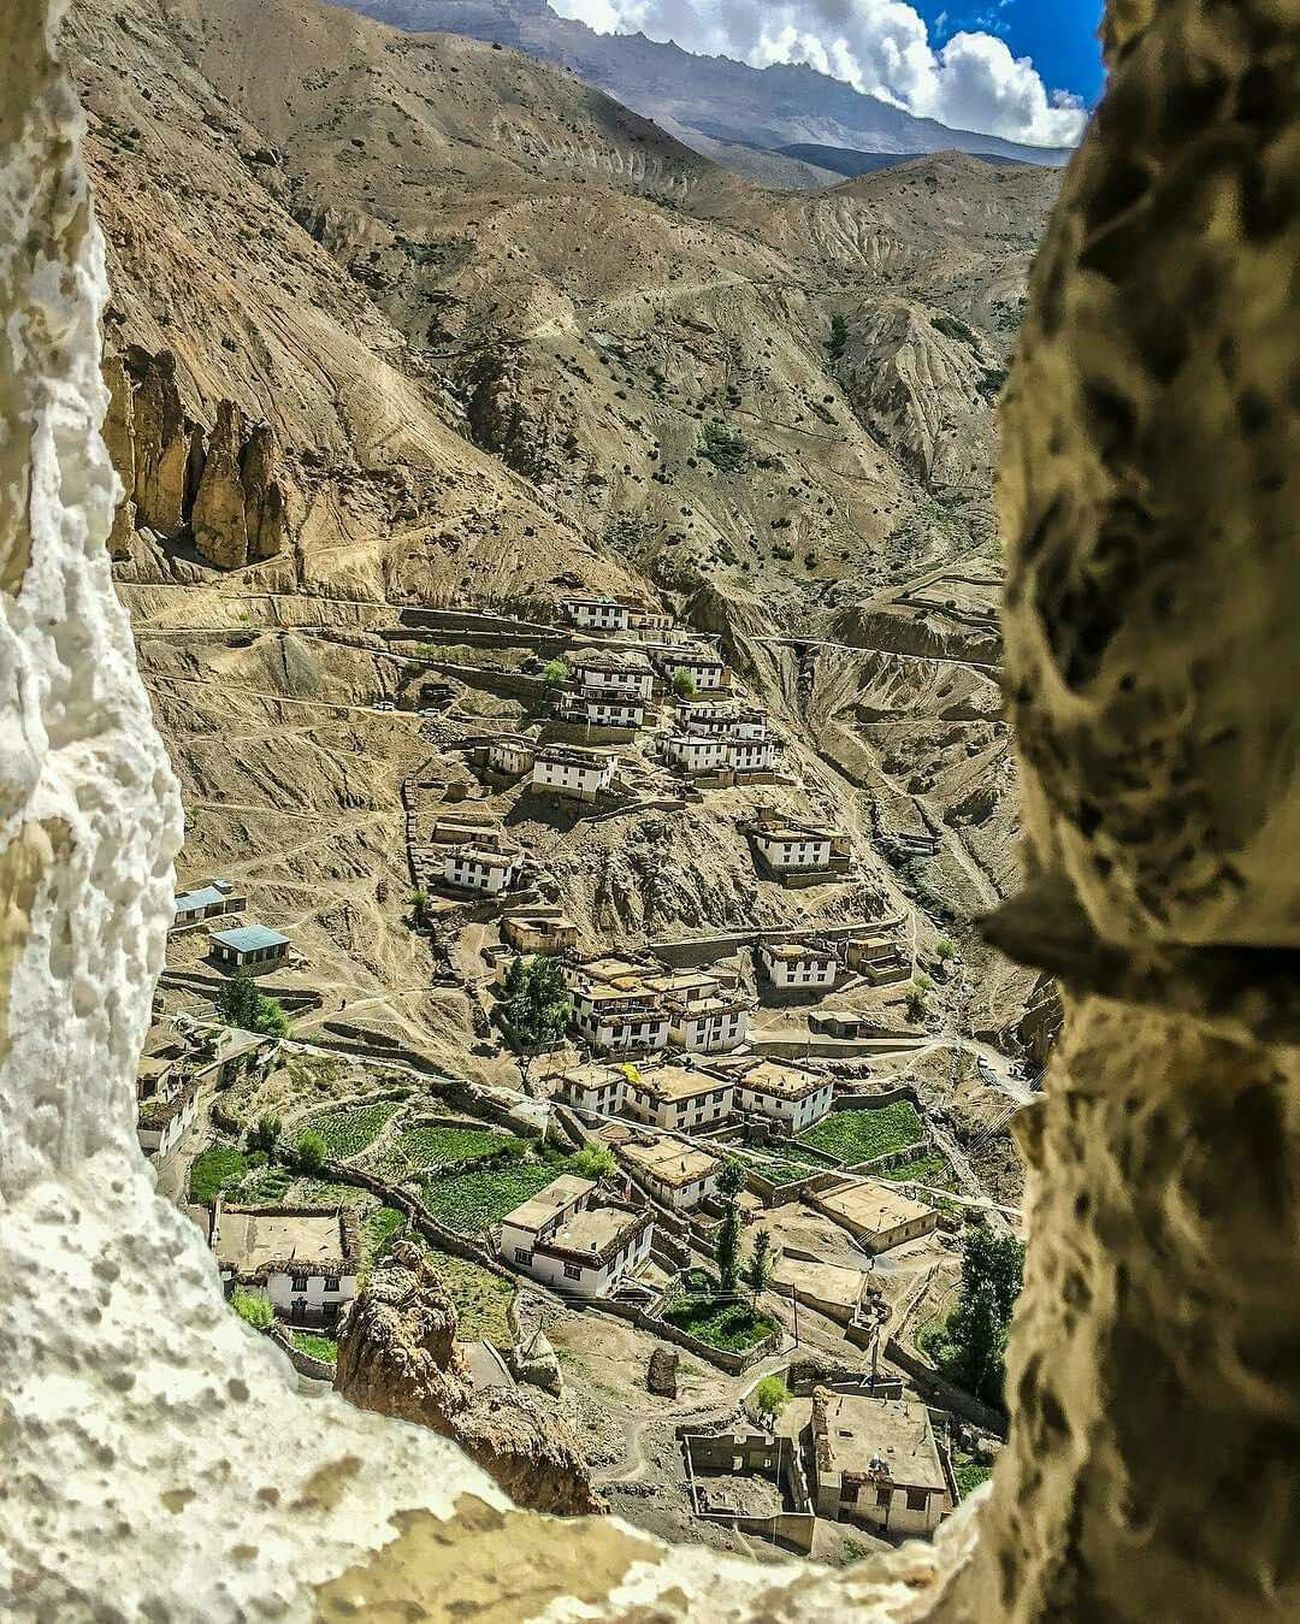 Village in Spiti Valley Travel Destinations Indianphotography Himachal Pradesh, India EyeEmNewHere Scenics Cold Desert India Spiti Valley